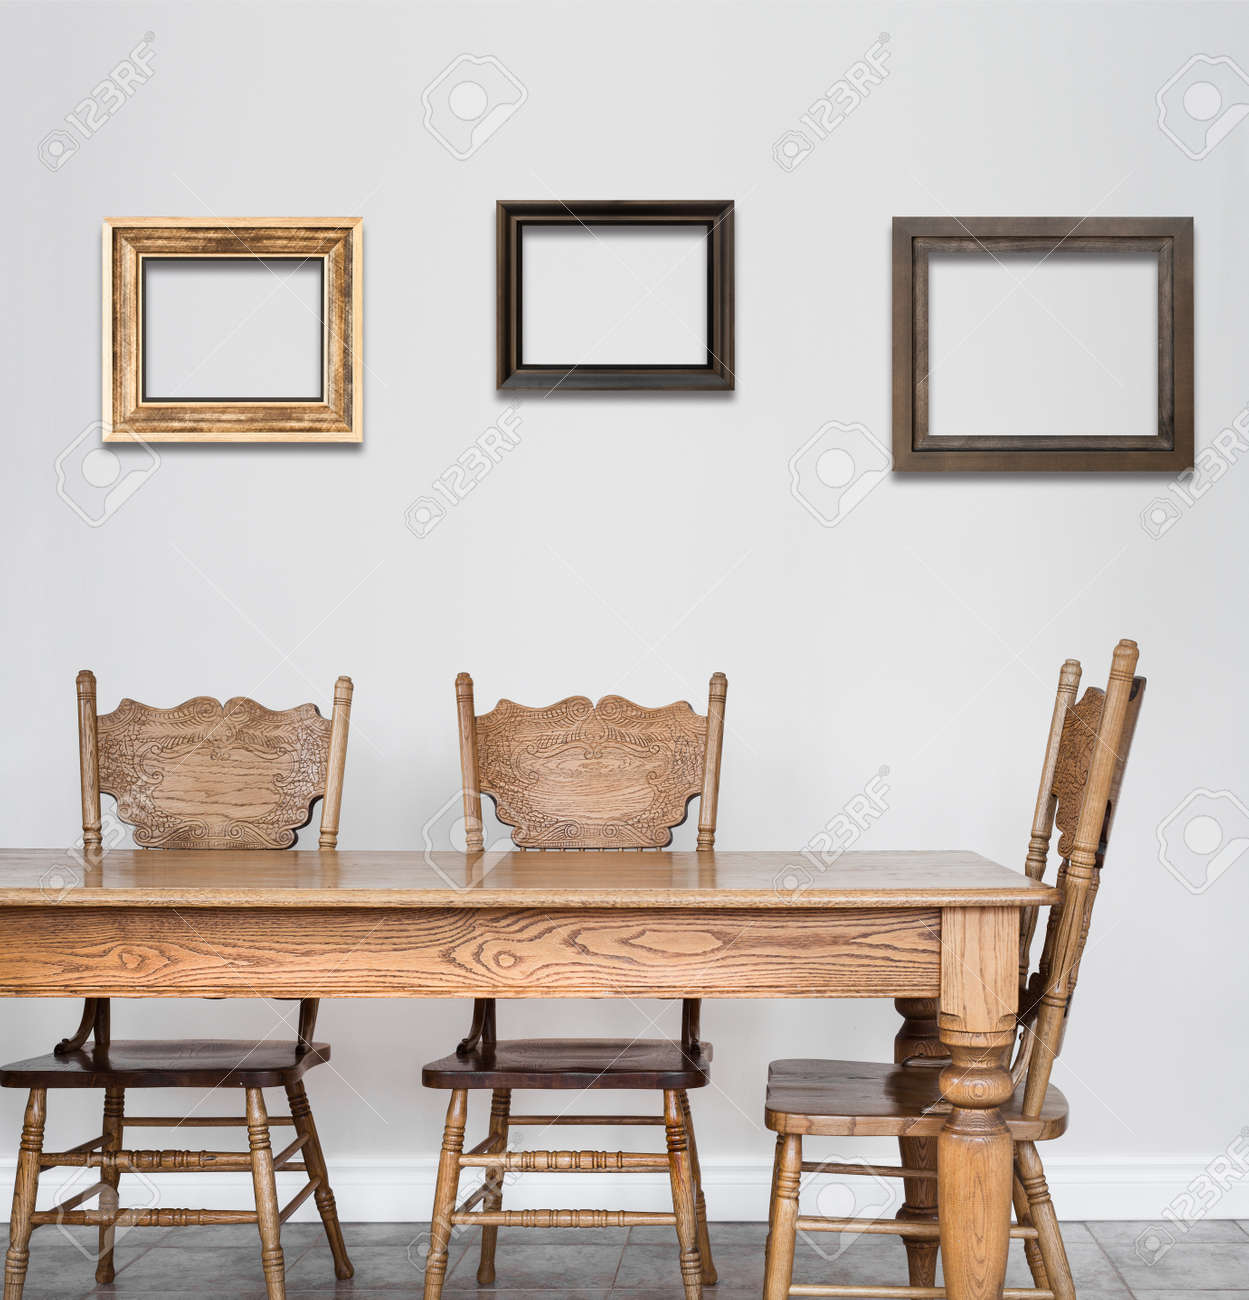 Wooden Dining Room Table And Chair Details And Blank Frames For Wooden Dining  Room Table And